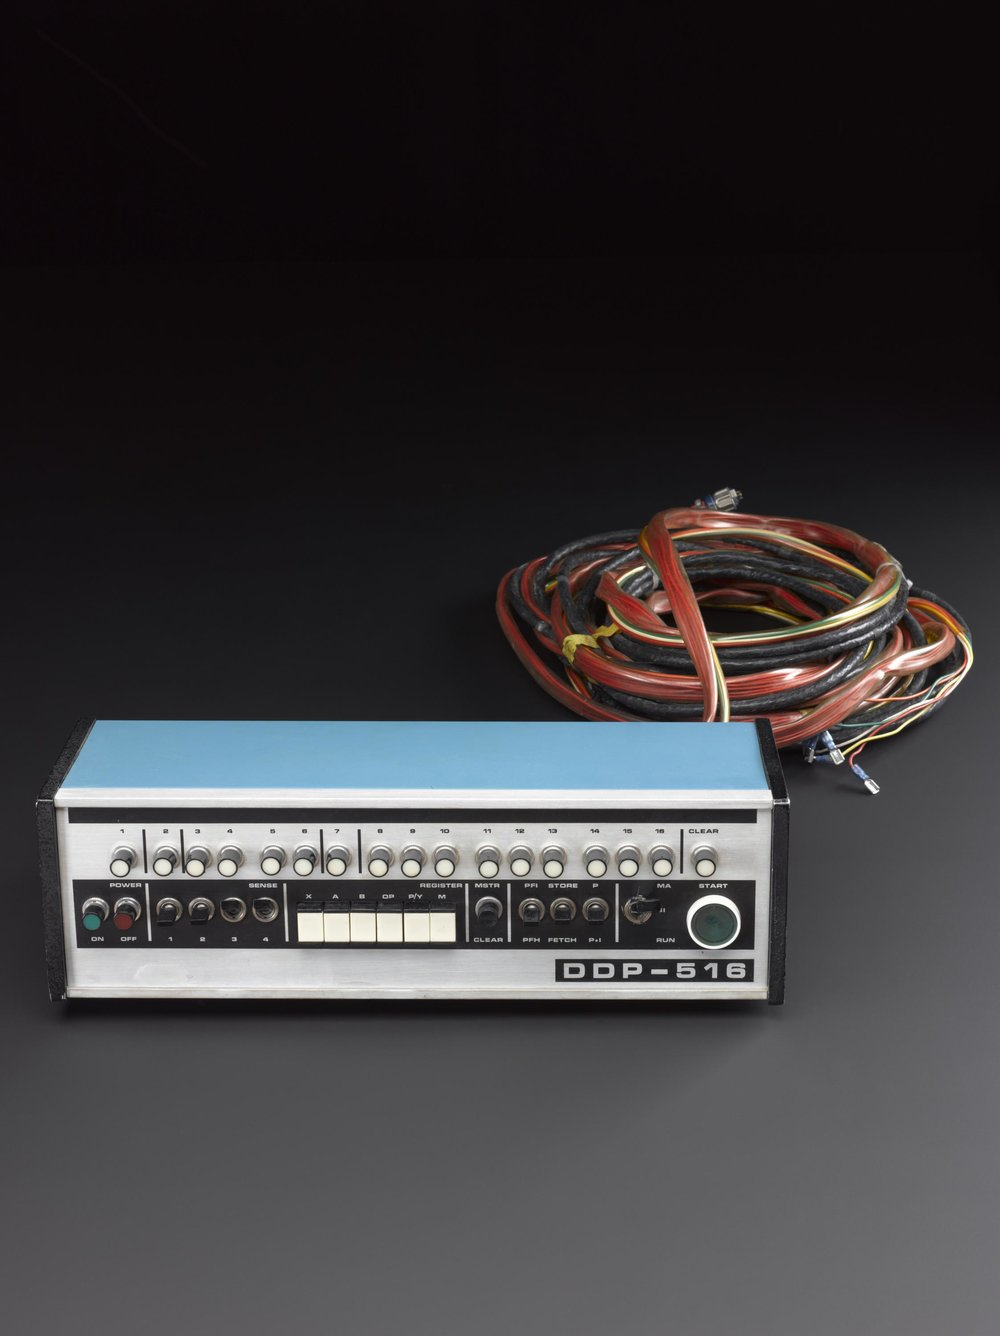 Control unit for Honeywell DDP 516 computer (1966-1970). DDP 516 computers were used as interface message processors (IMPs) in the early ARPANET network. More information